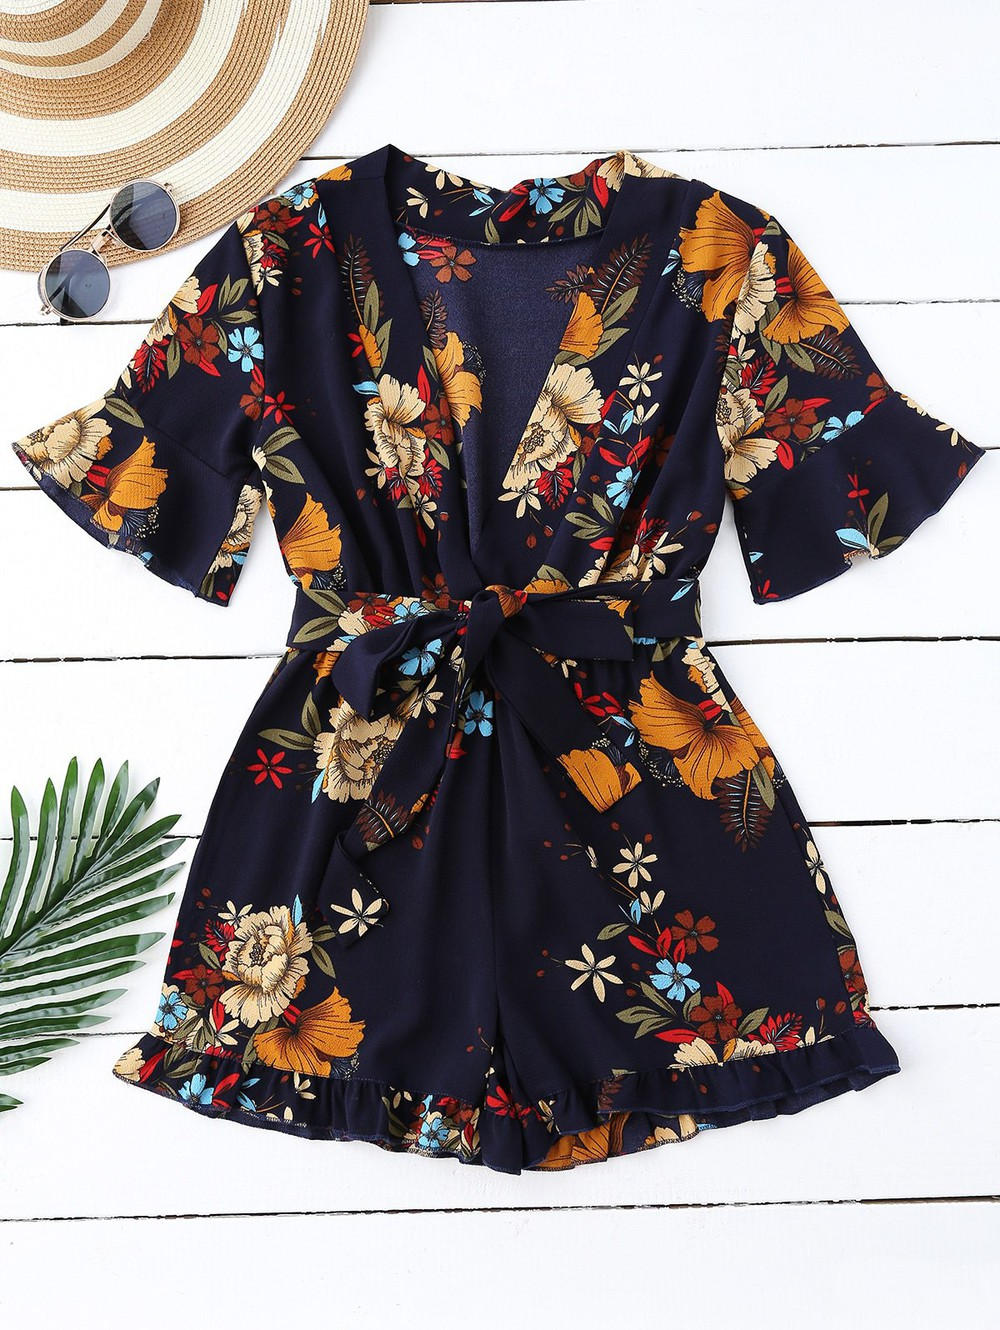 Zaful Bell Sleeve Floral Plunging Neck Romper in blue